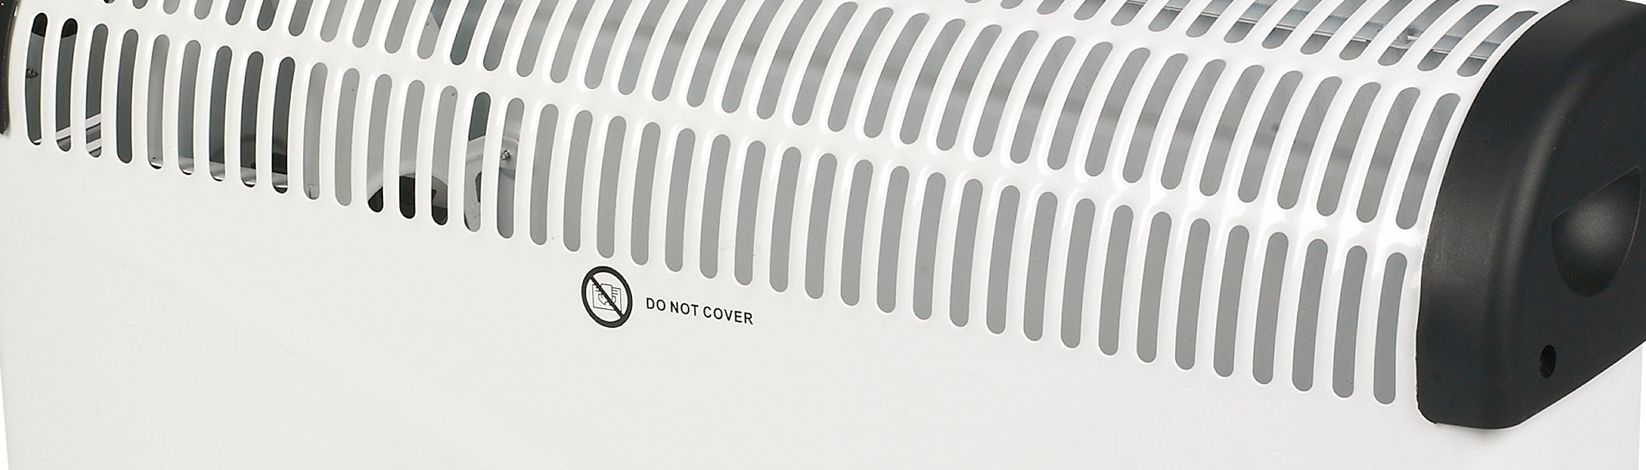 Convector Banner